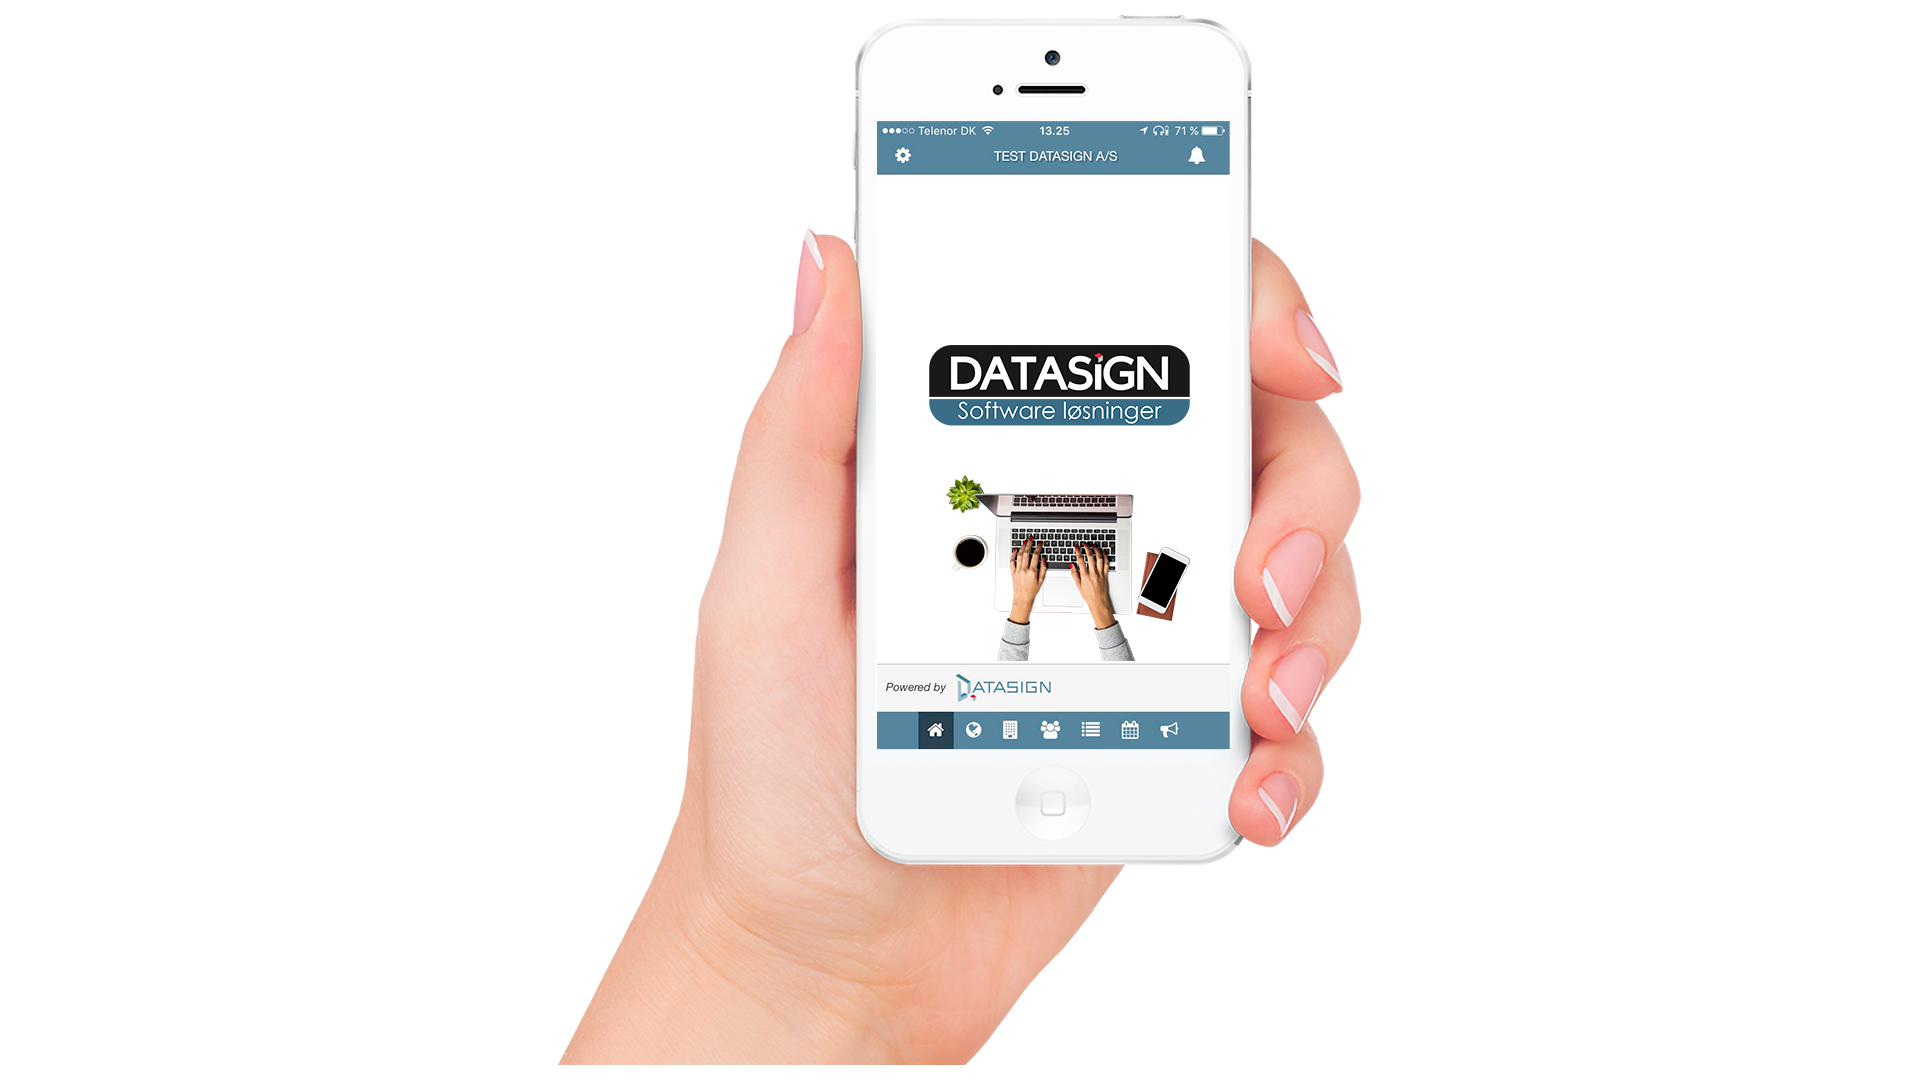 datasign mobile app